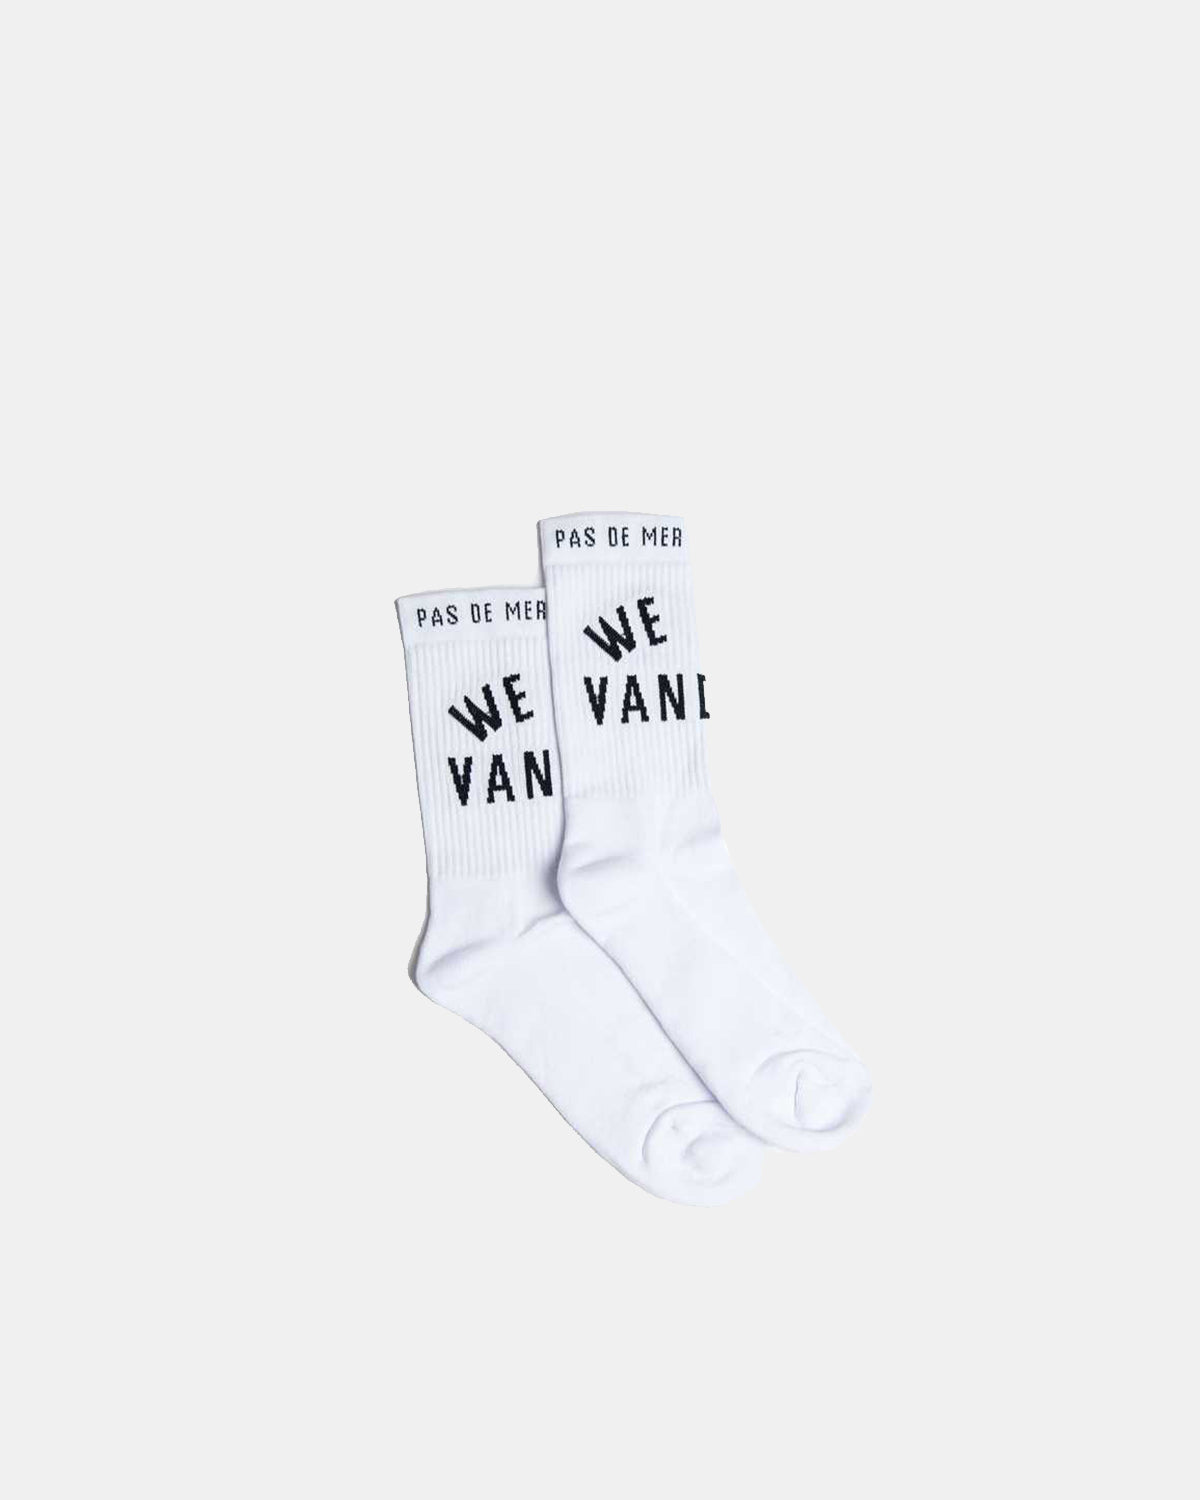 Pas de Mer - We Are Vandals Socks (White)